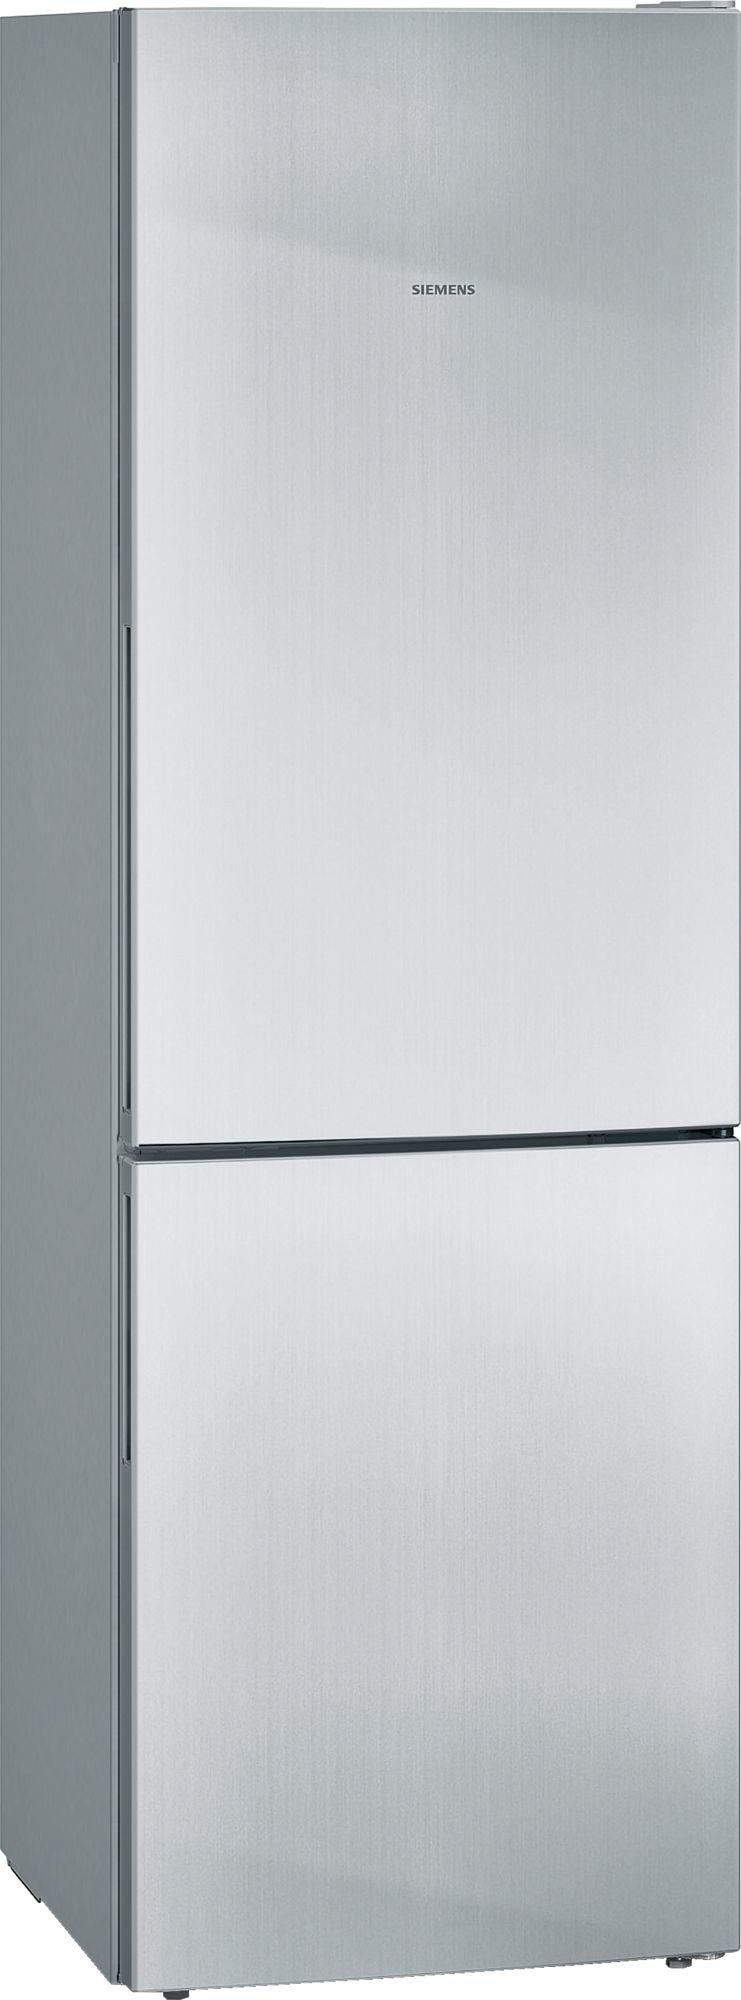 Image of iQ300 KG36VVIEA 60cm 307 Litre A++ Low Frost Fridge Freezer | Silver Inox